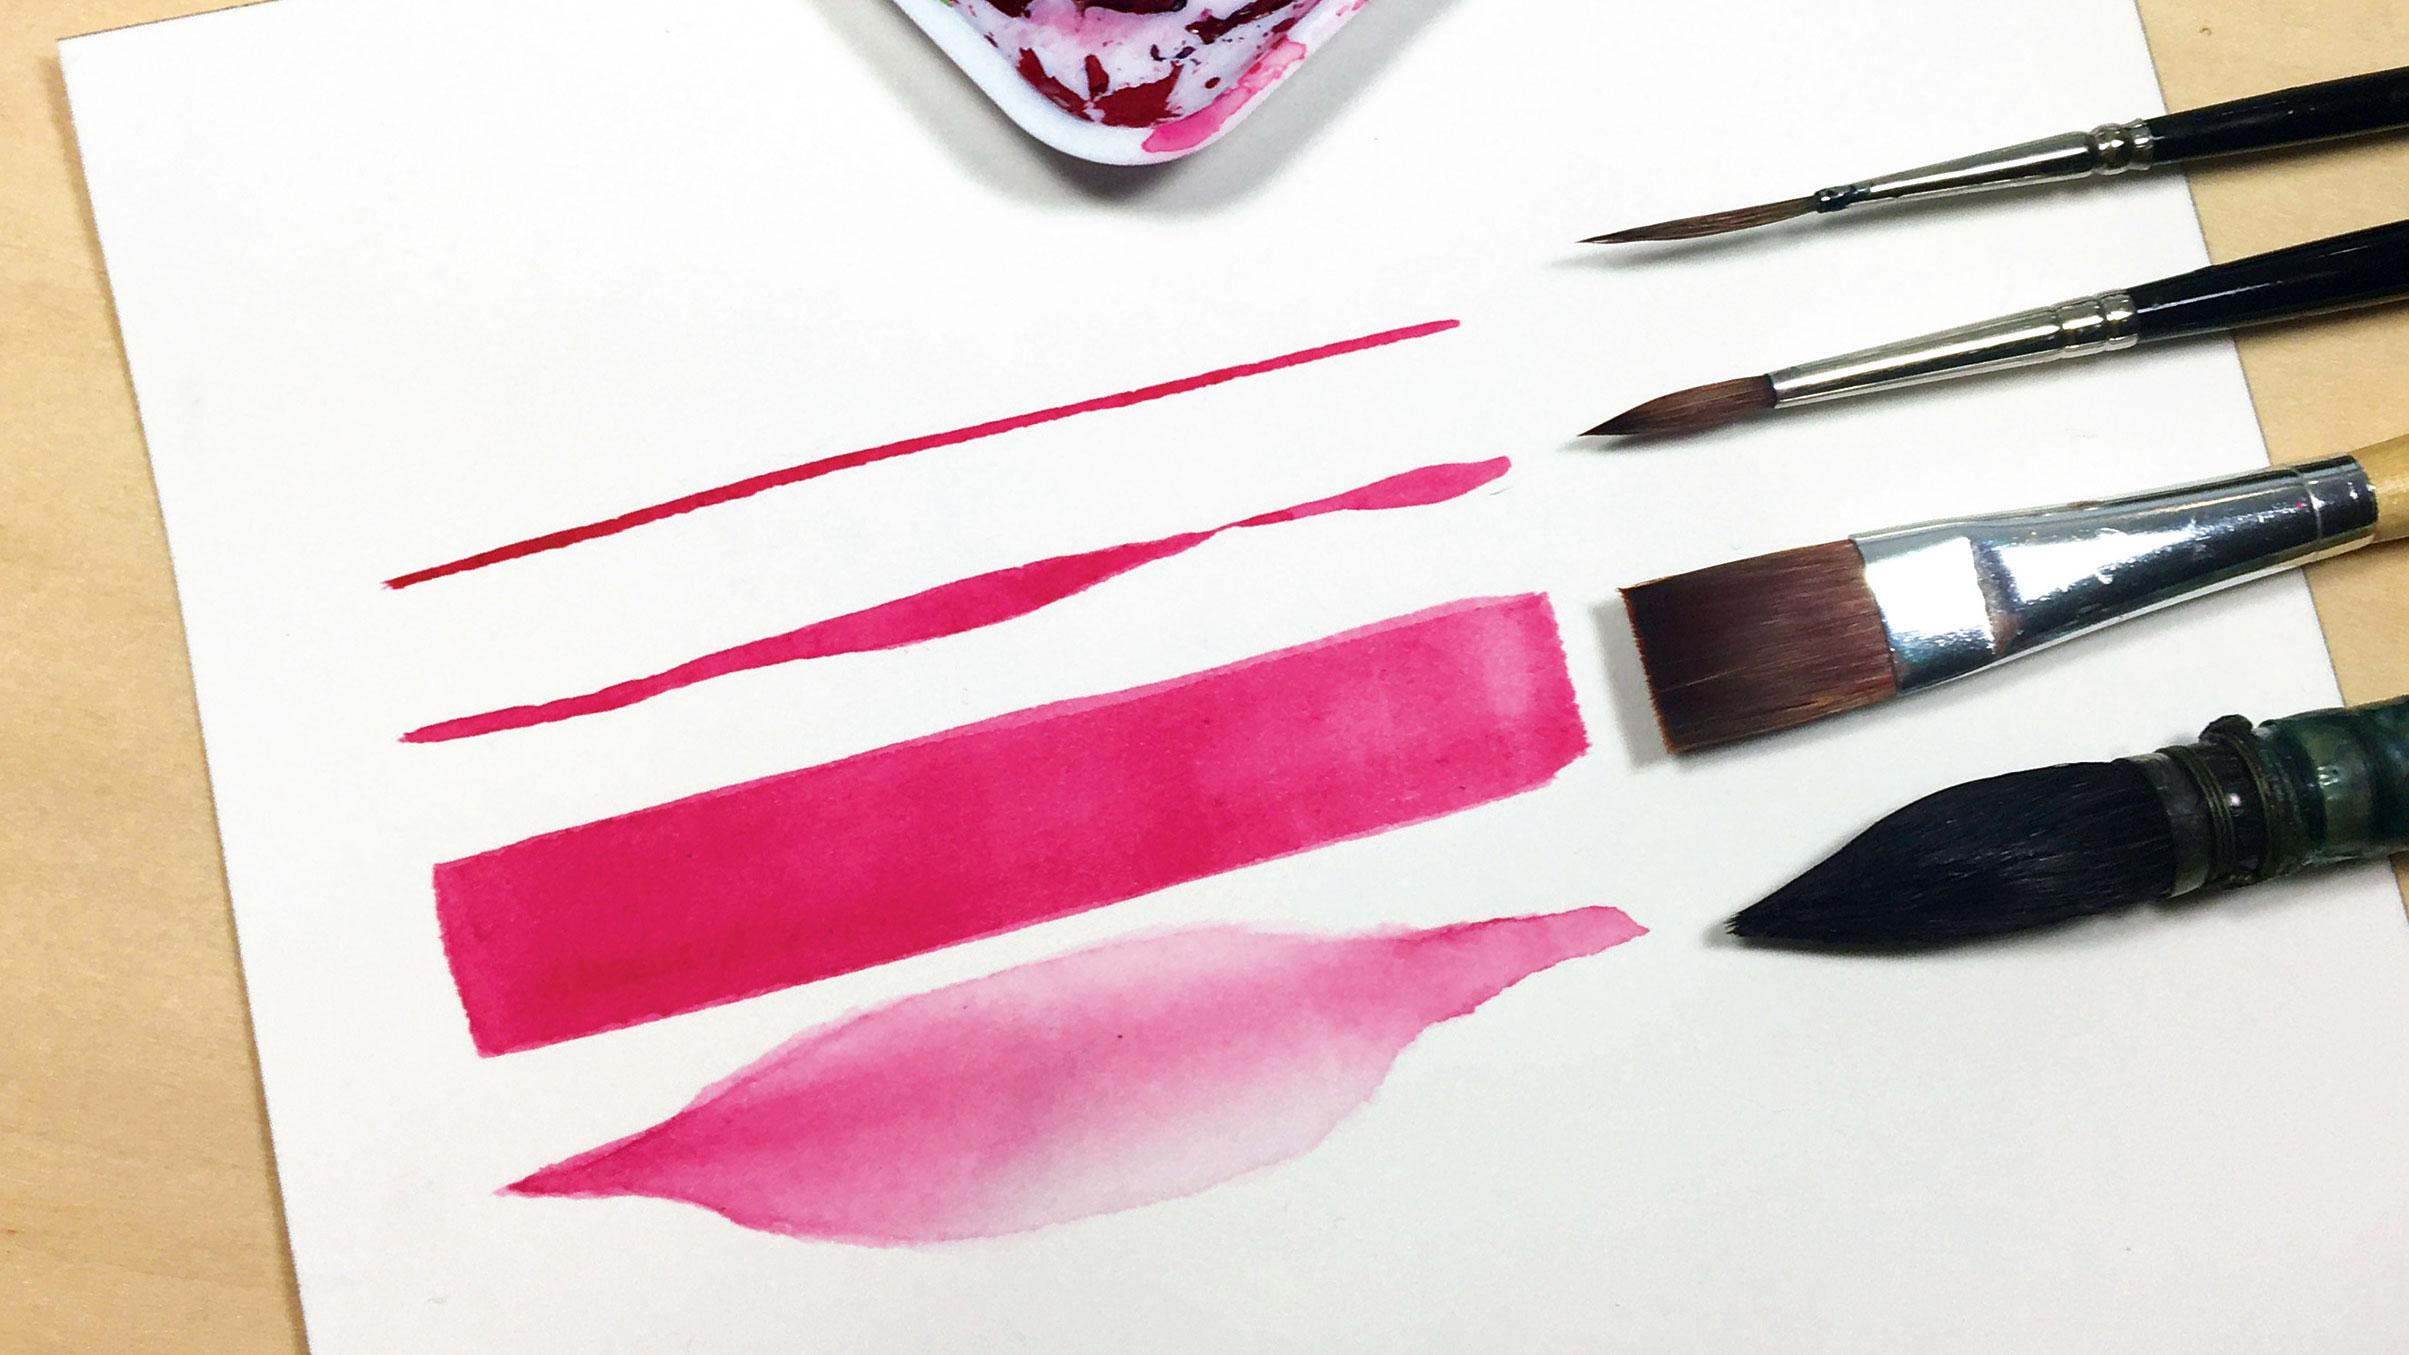 Four different watercolour brushes next to the type of stroke they make